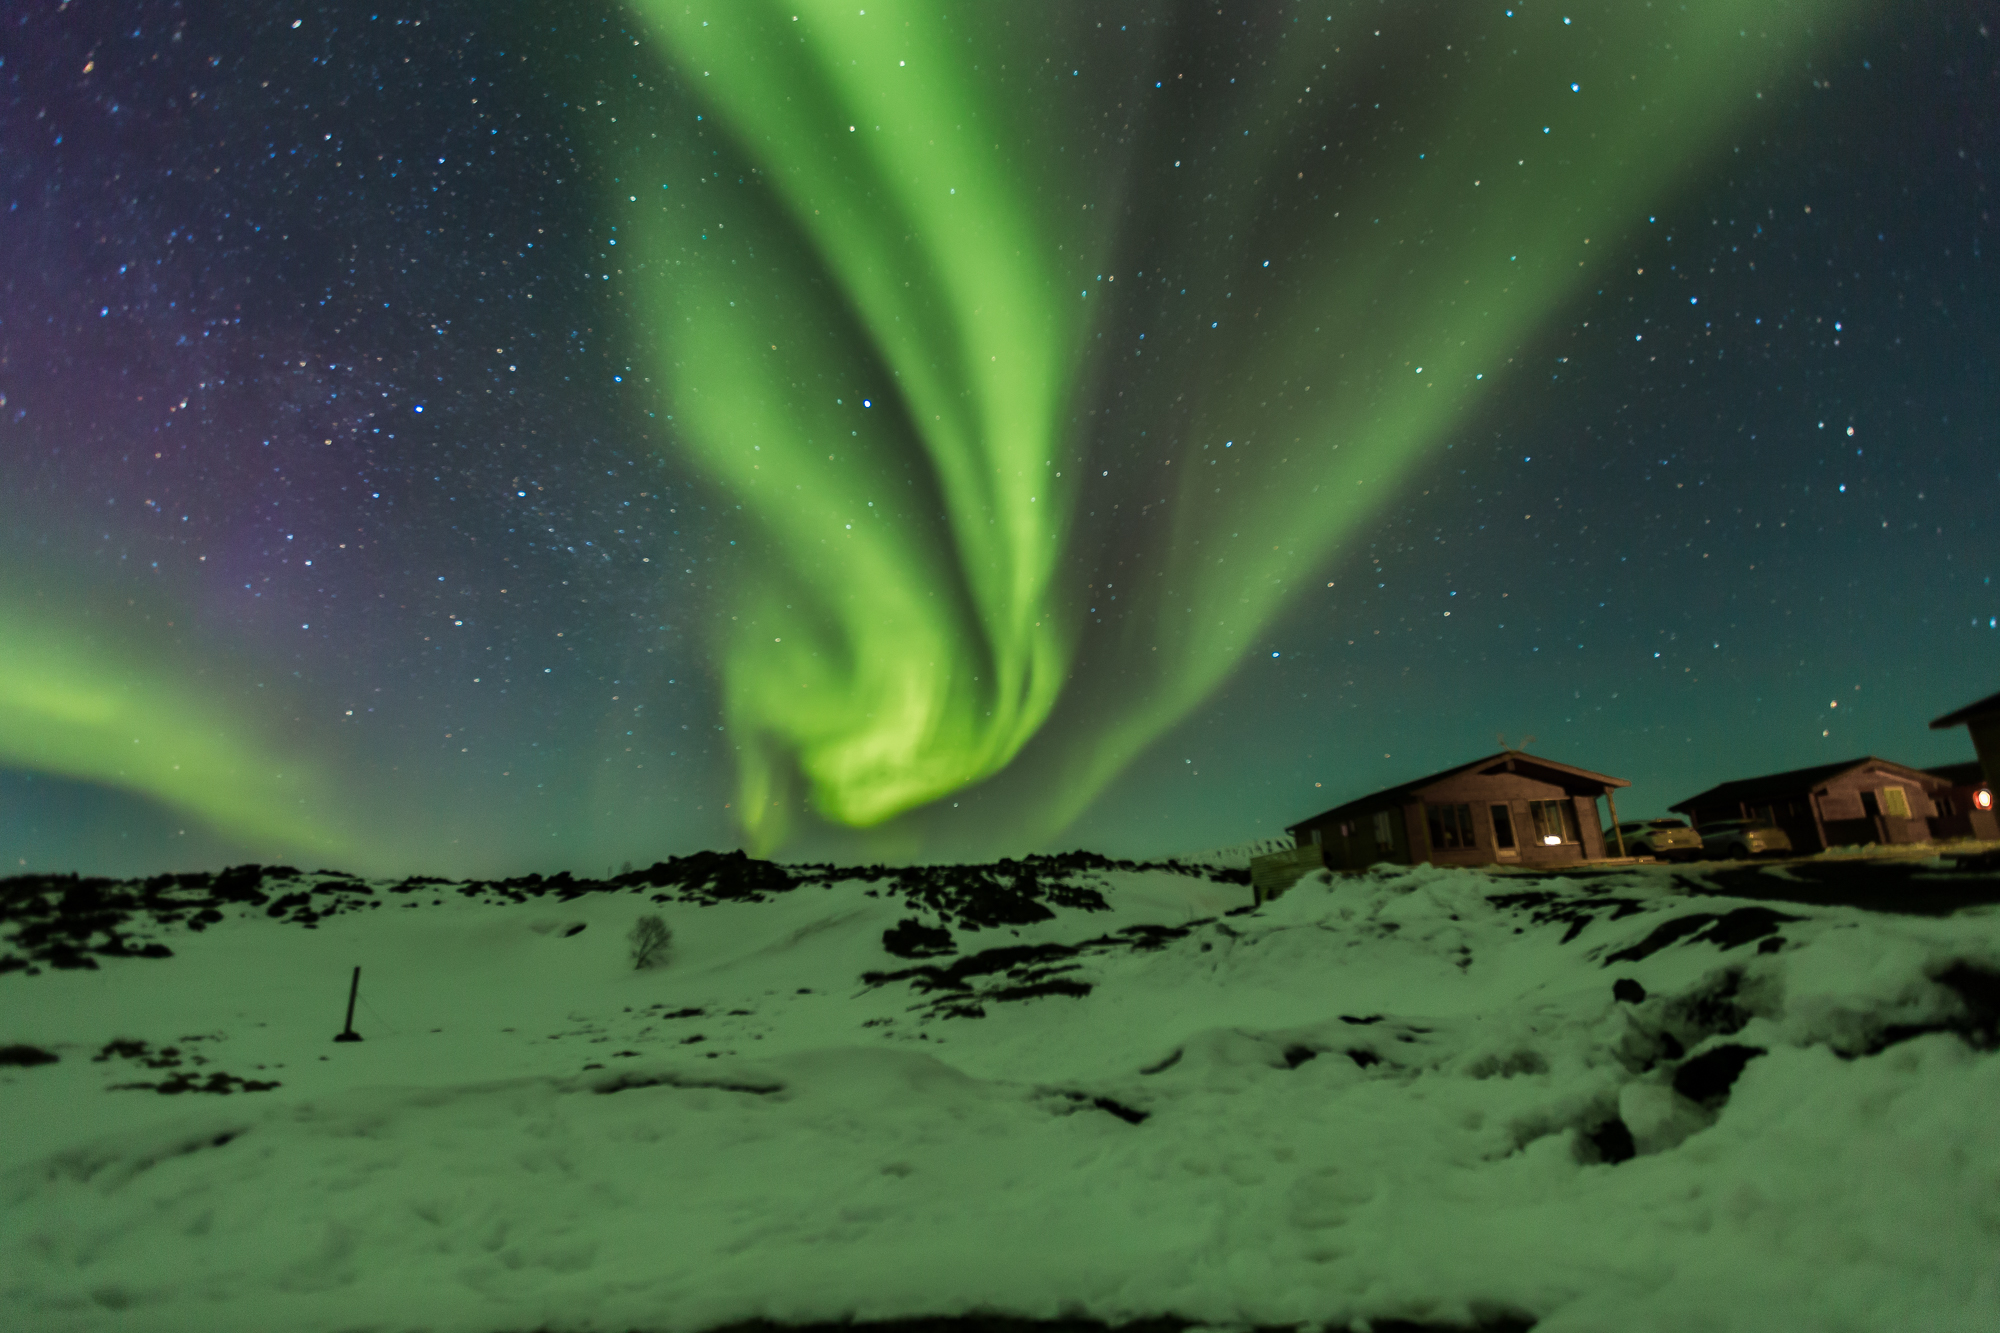 Northern lights seen at Myvatn in Iceland